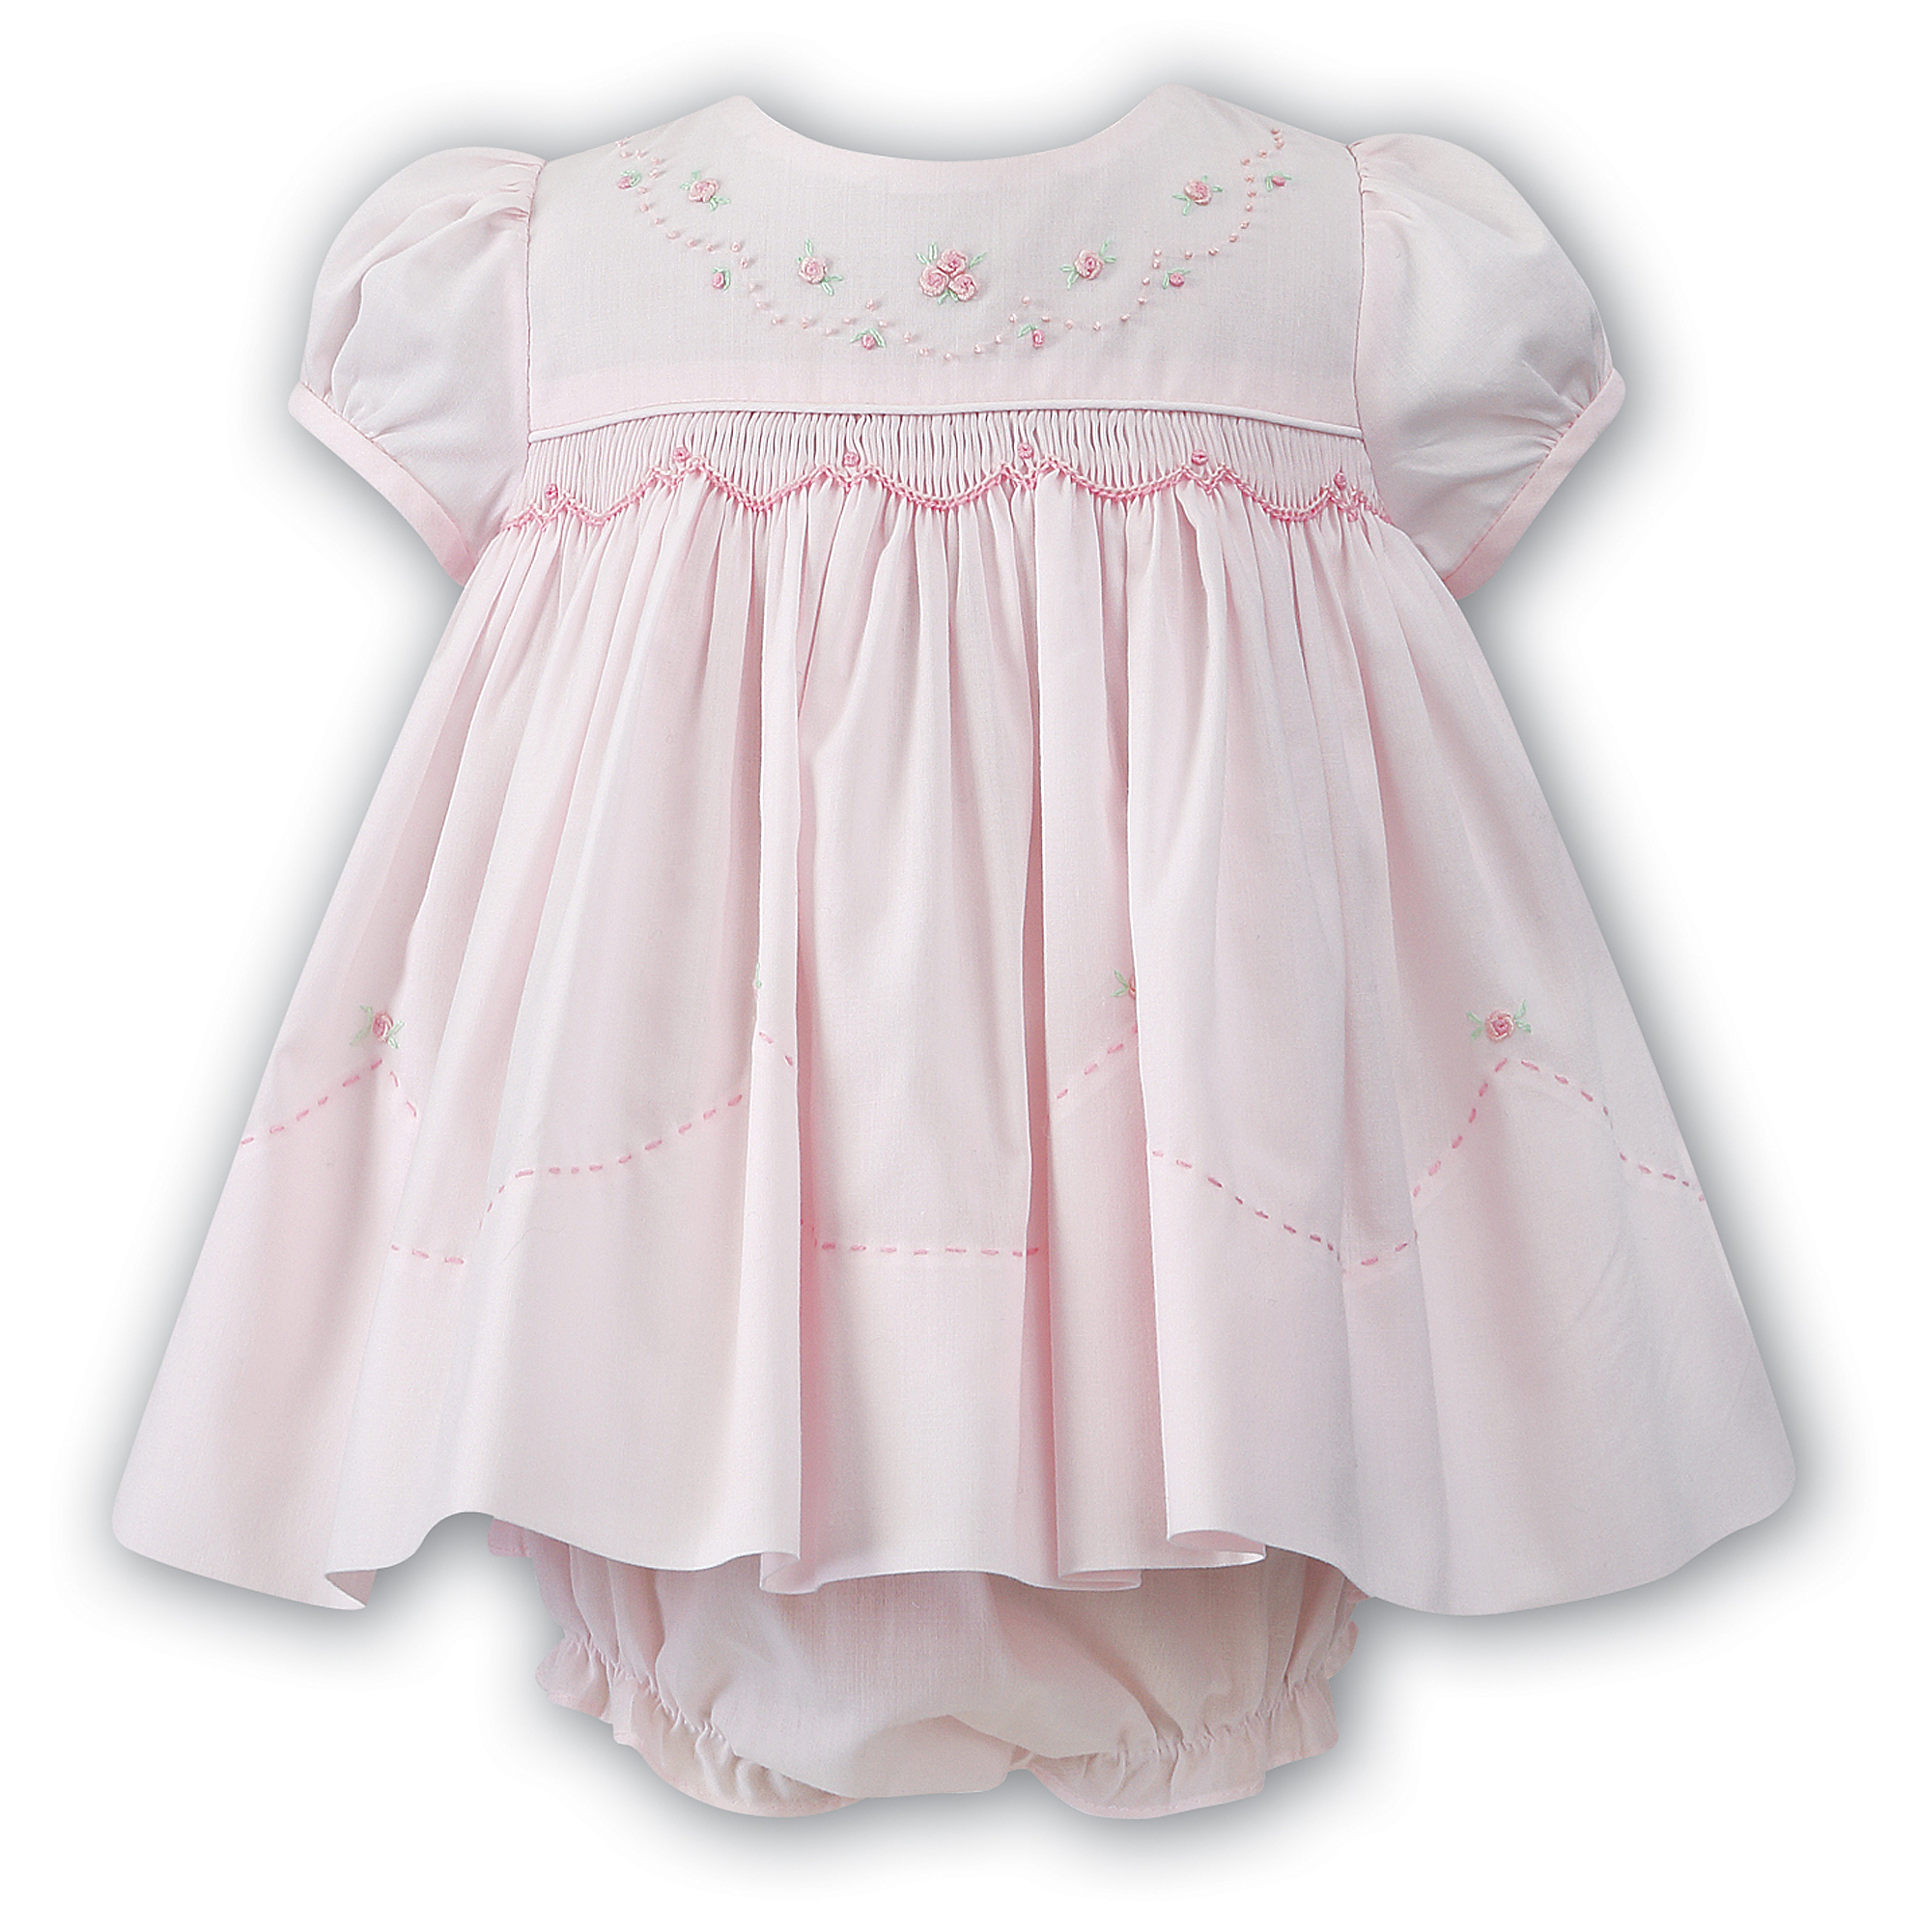 Embroidered Dress Set Baby Boutique Clothing